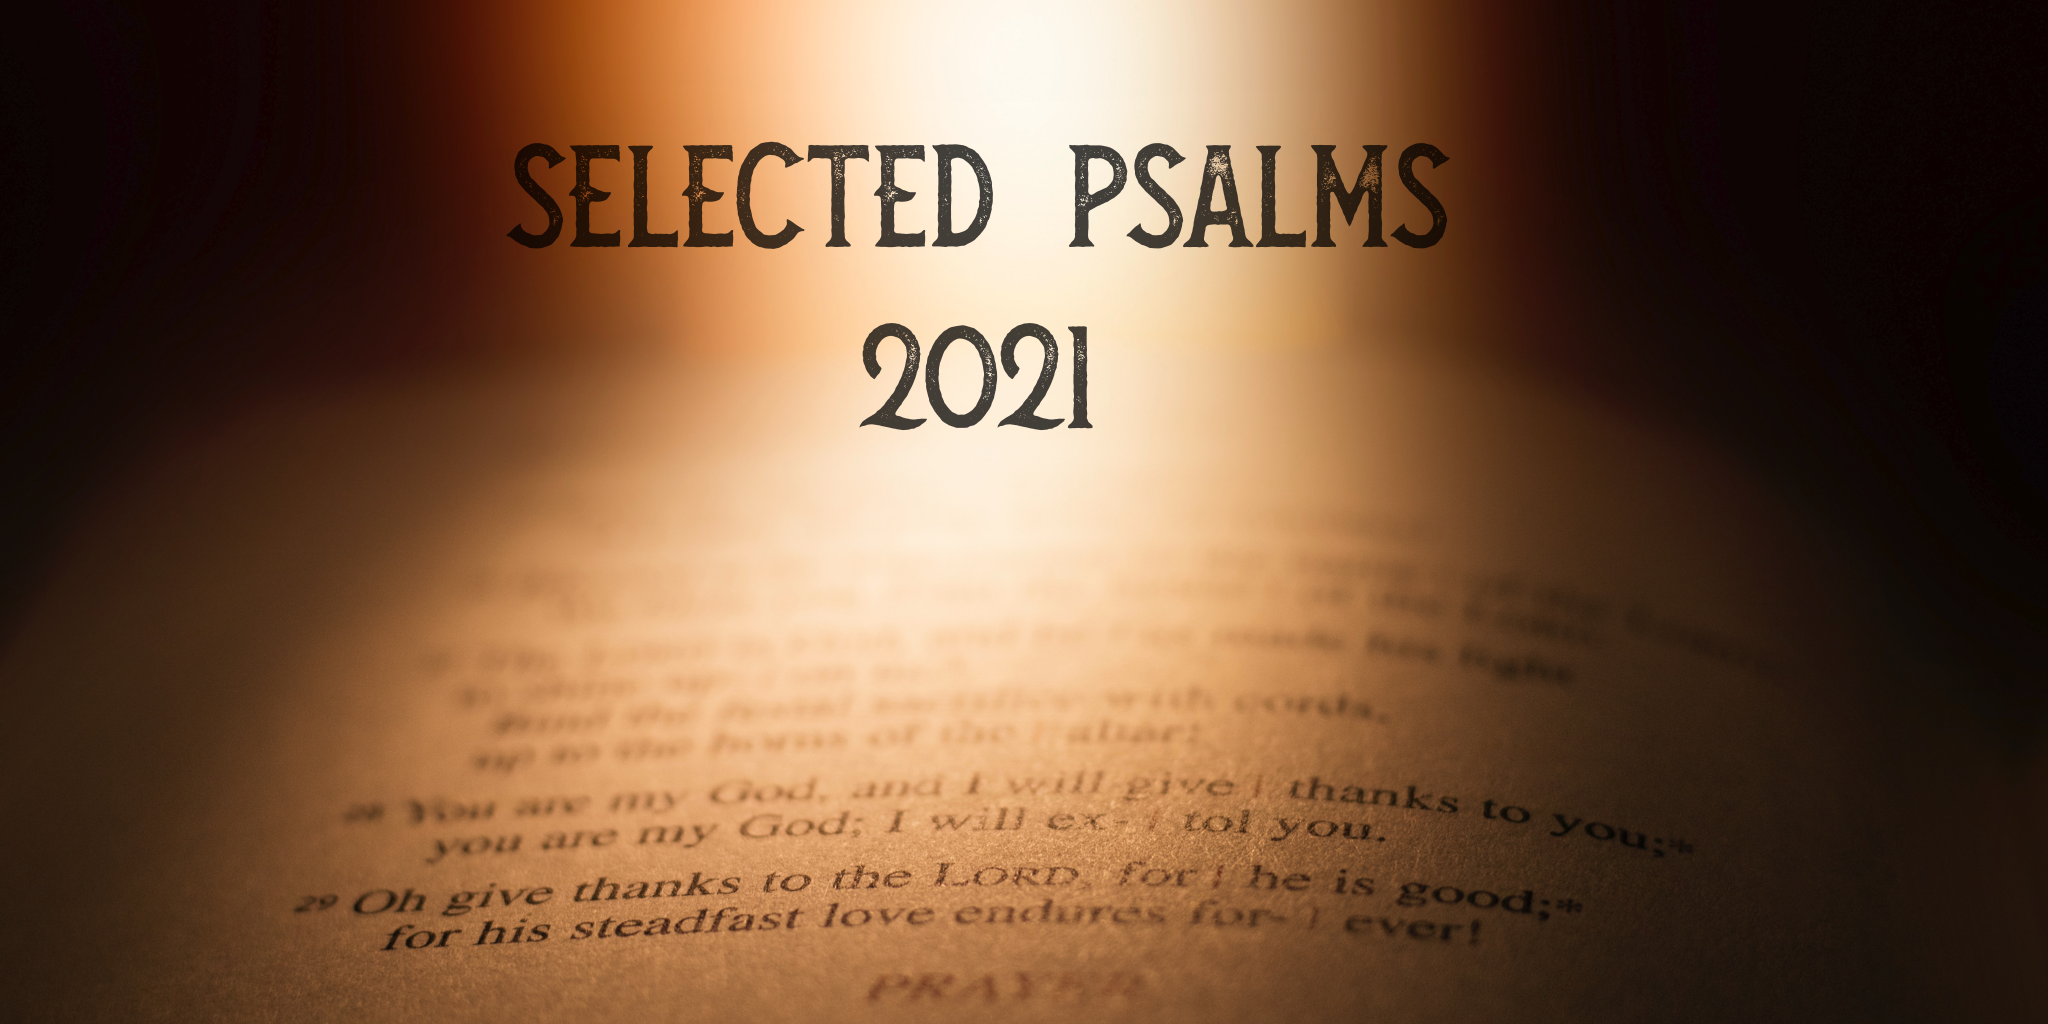 Selected Psalms 2021